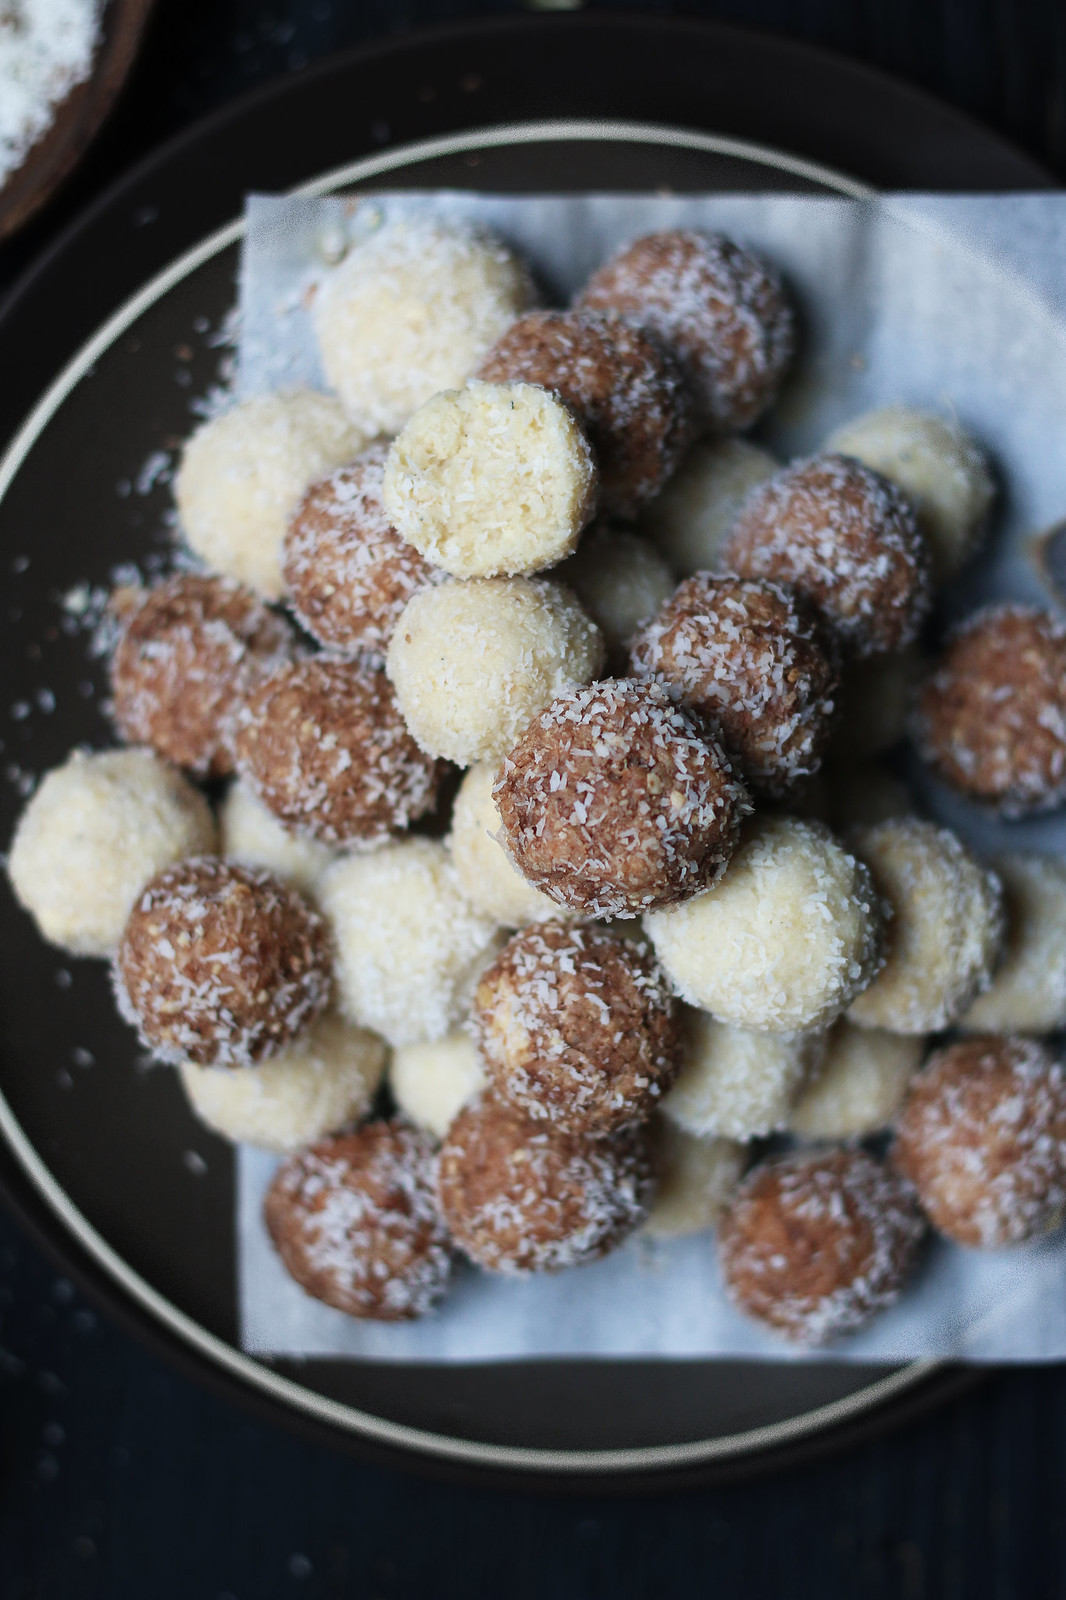 Easy 30 minute Coconut-Cashew-Chocolate Ladoo/Fudge